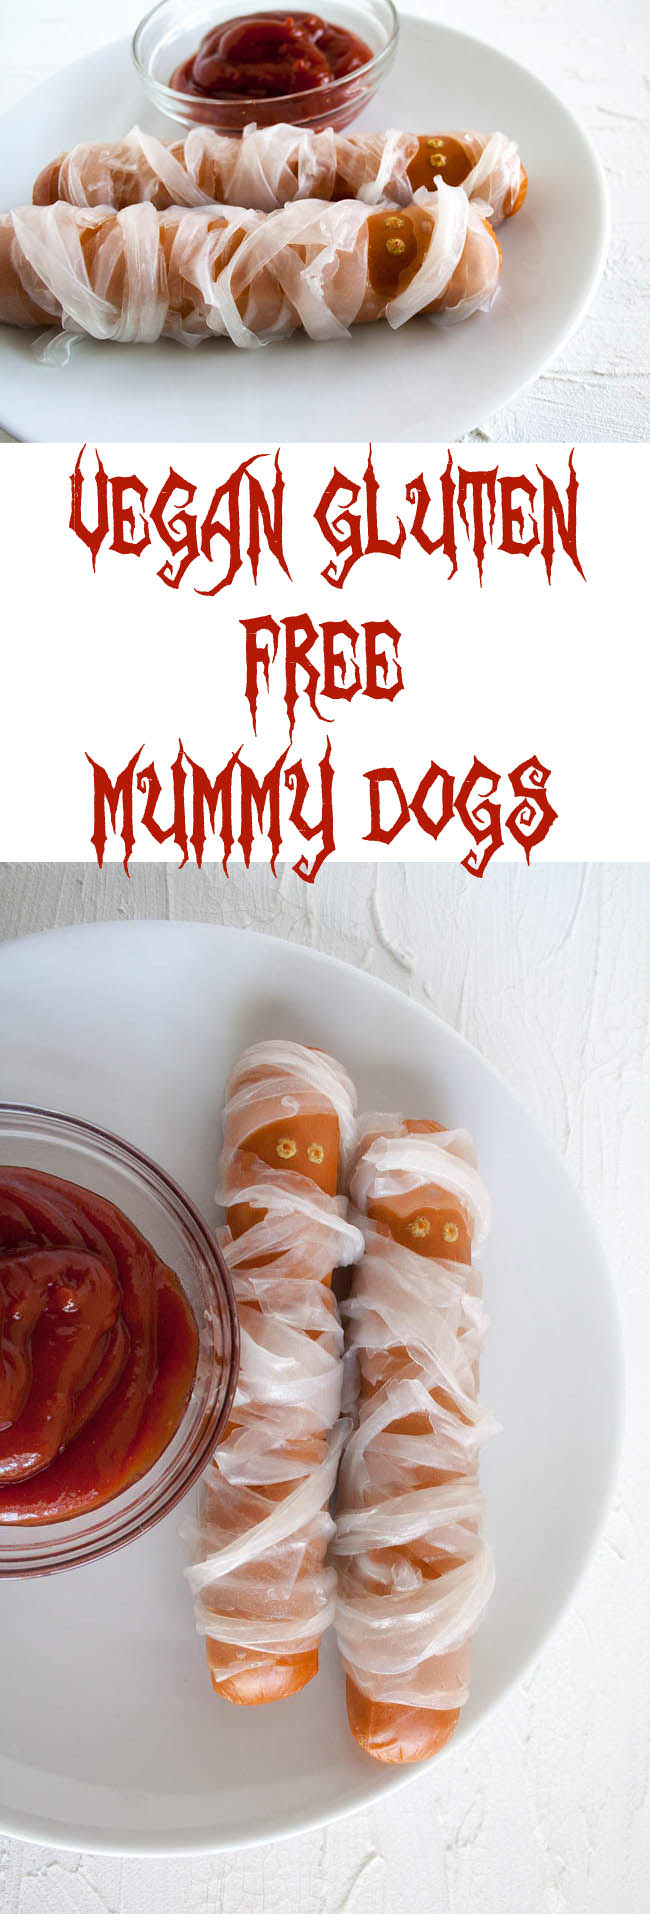 Vegan Gluten Free Mummy Dogs collage photo with two photos and text in between.